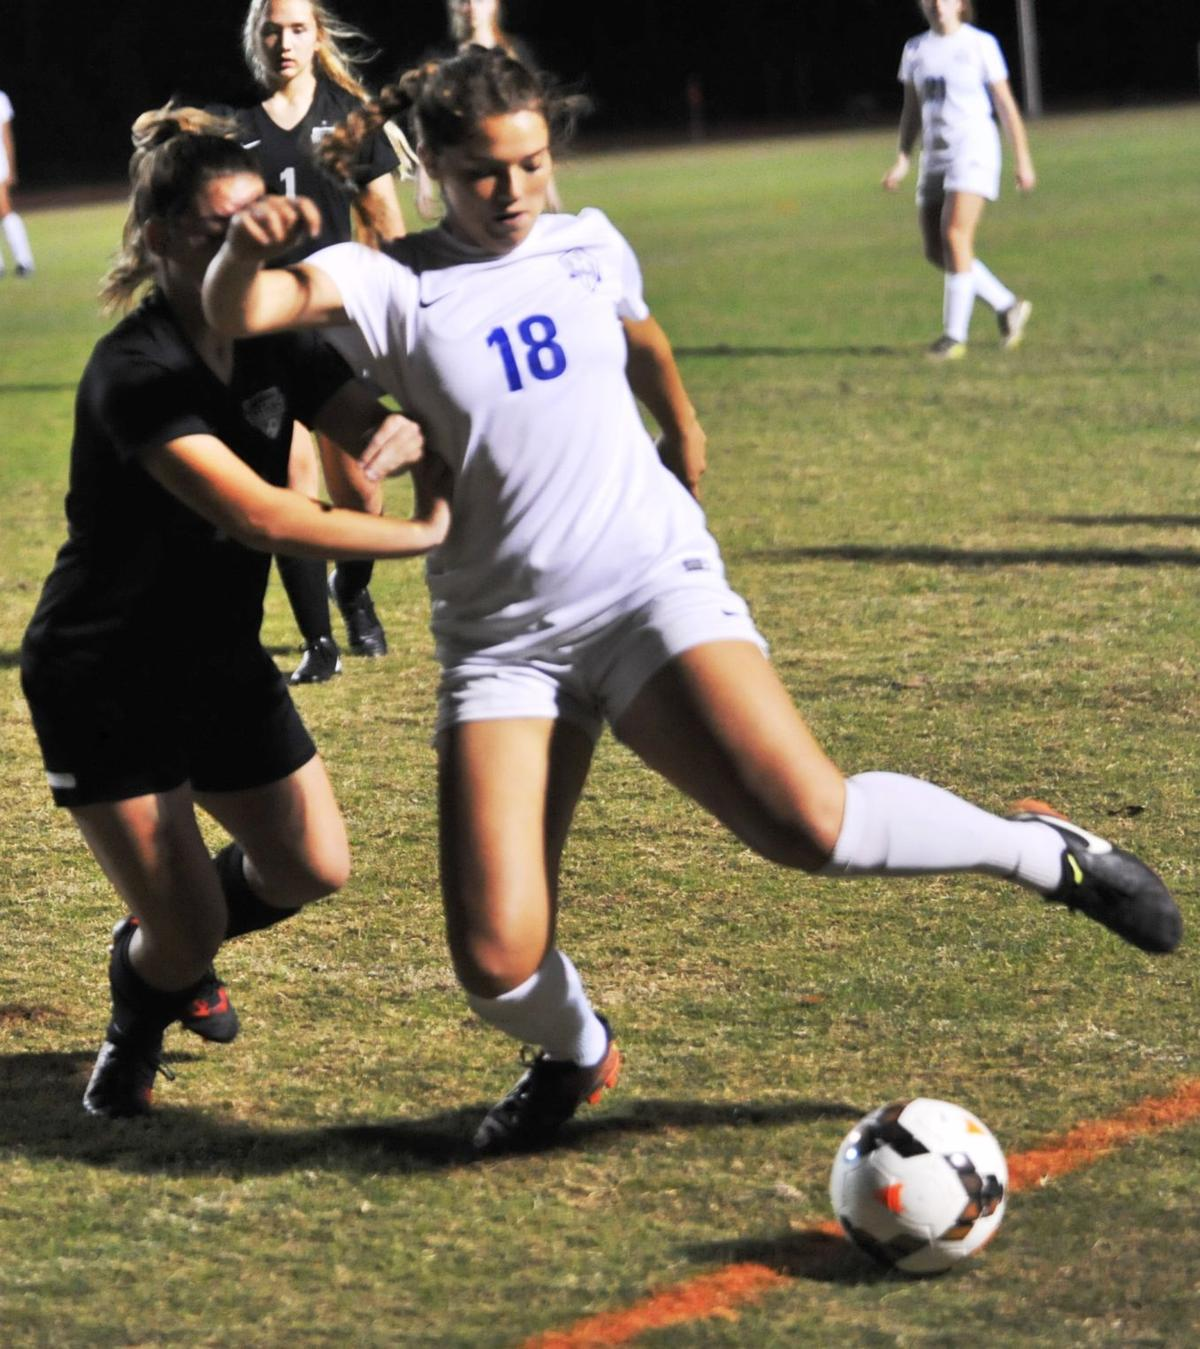 Lakeshore-Mandeville Girl Soccer Picture